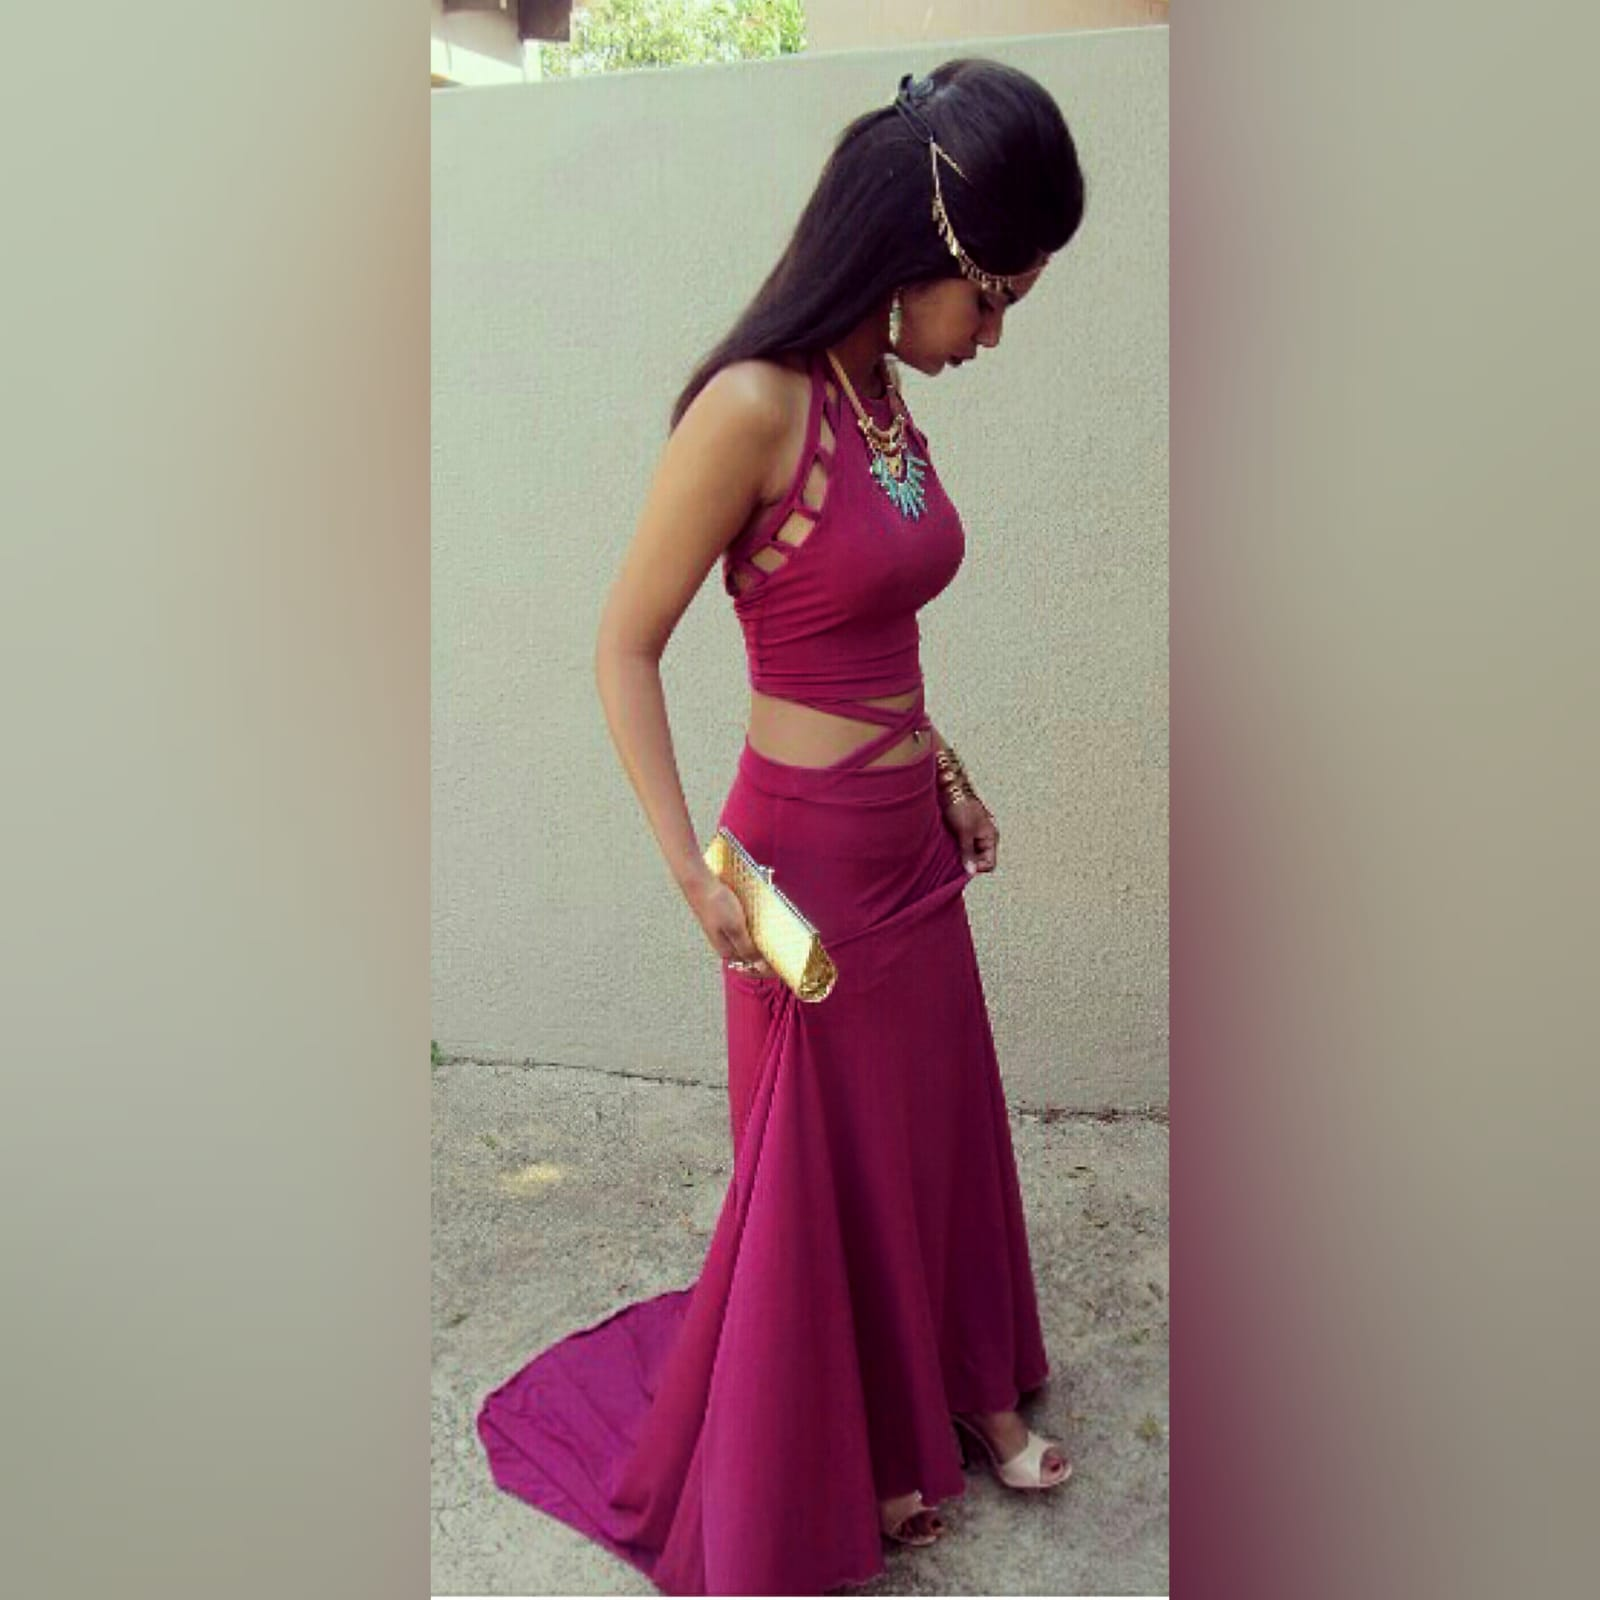 2 piece plum prom dance dress 3 2 piece plum prom dance dress. Halter neck crop top. Straps from the crop top create a cross that joins to the skirt. Skirt fitted till the hip and then very flowy with a long, wide train.